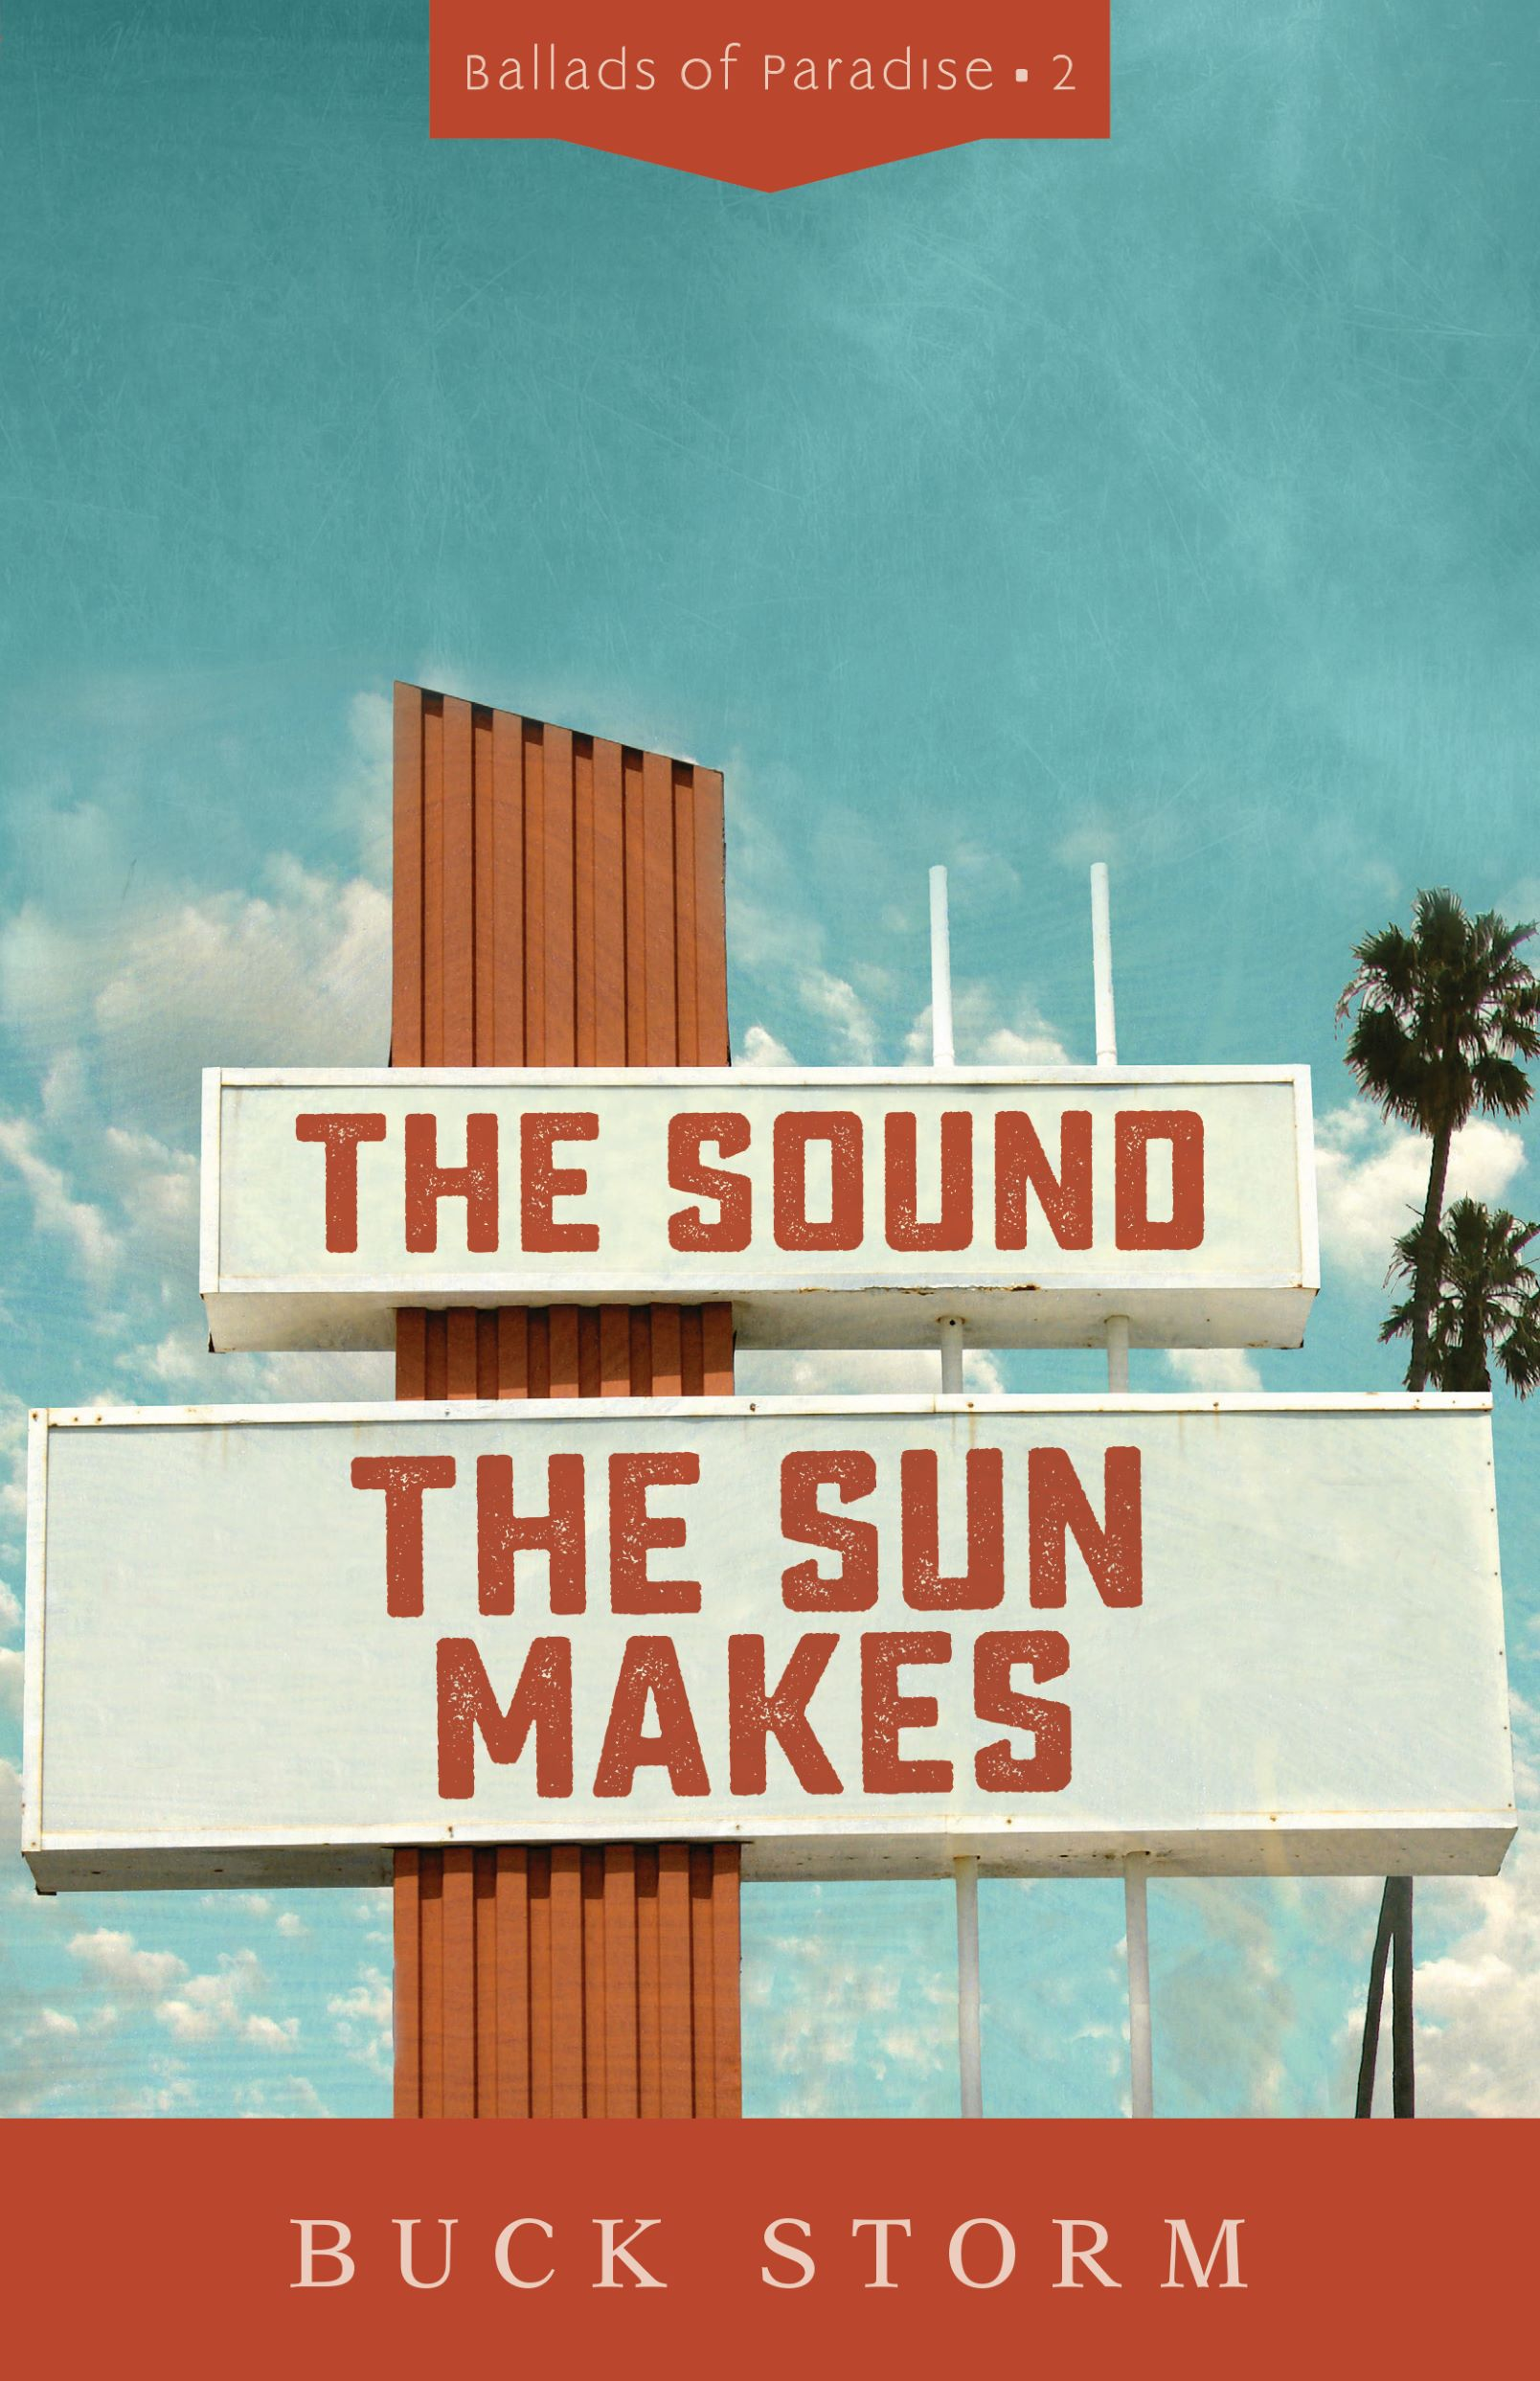 The Sound the Sun Makes by Buck Storm